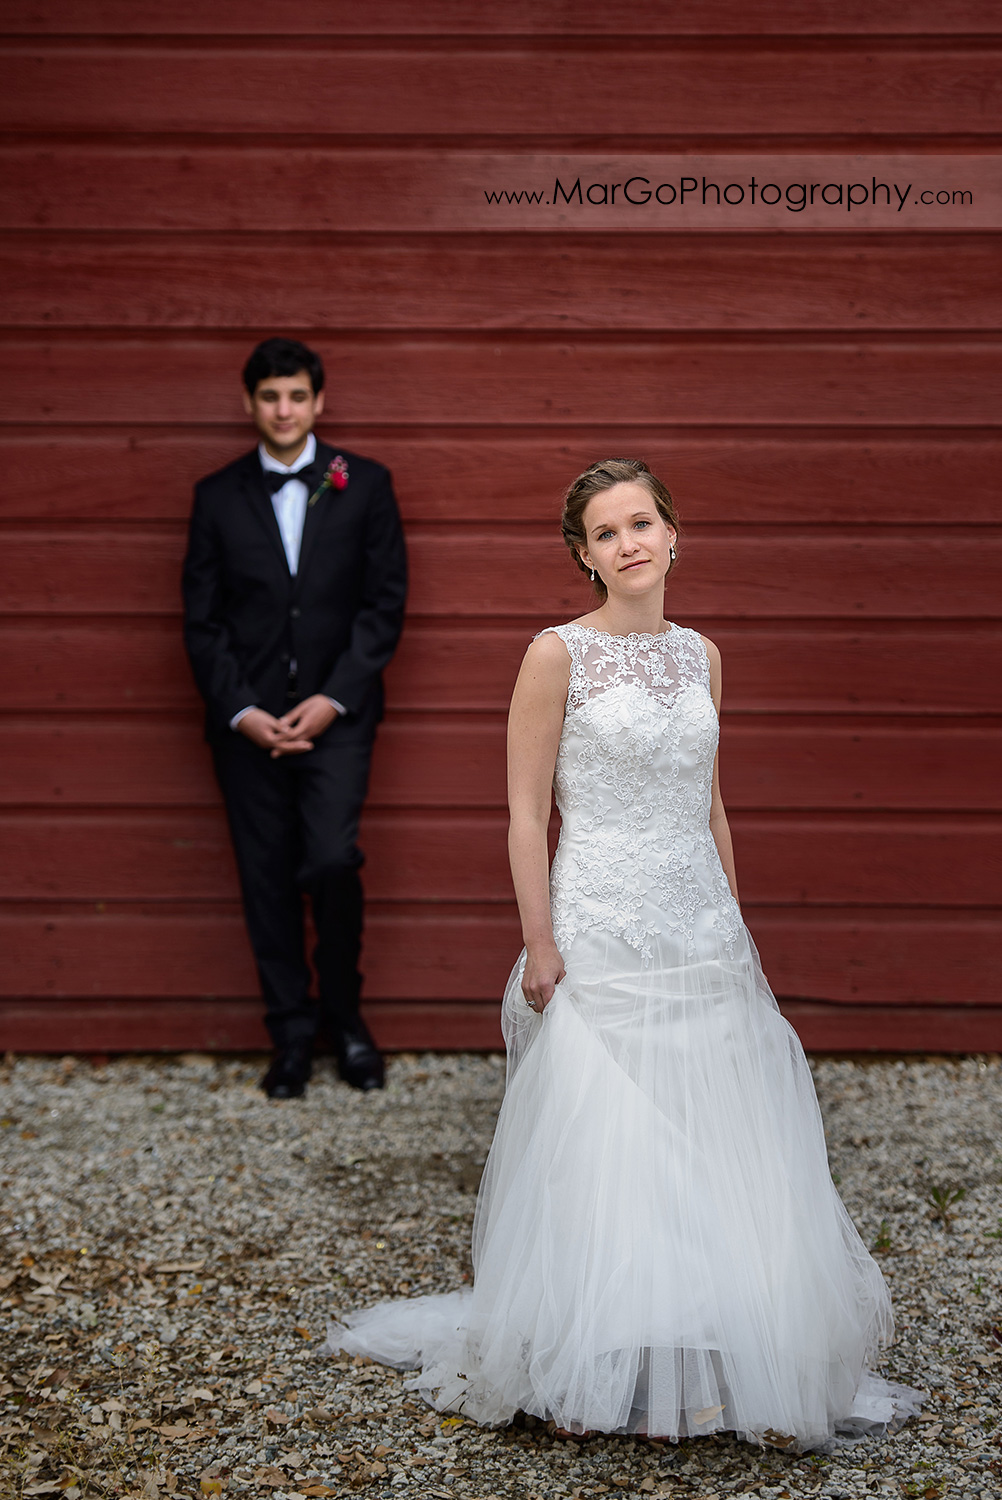 bride astanding in front of groom looking on the red barn wall during bridal session at Shinn Historical Park and Arboretum in Fremont